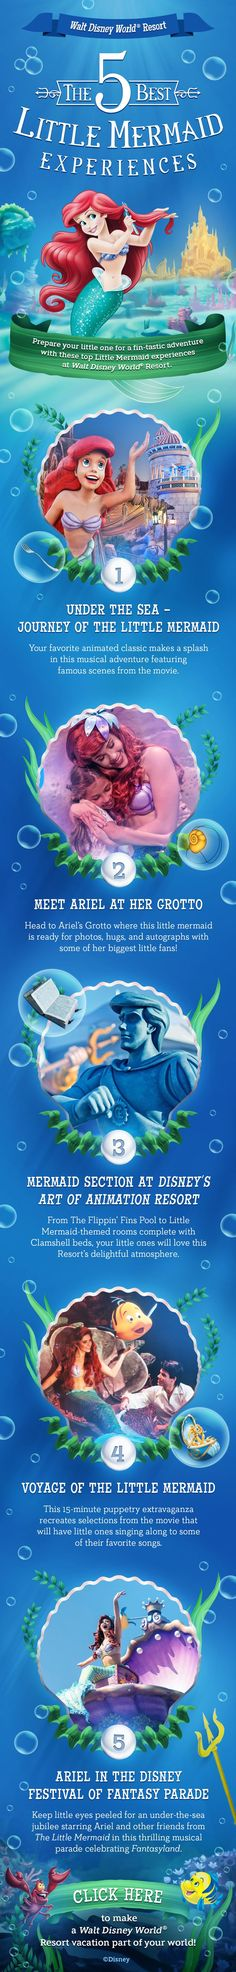 Does your little one love the Little Mermaid? Learn more about how you can be part of Ariel's world at Walt Disney World!